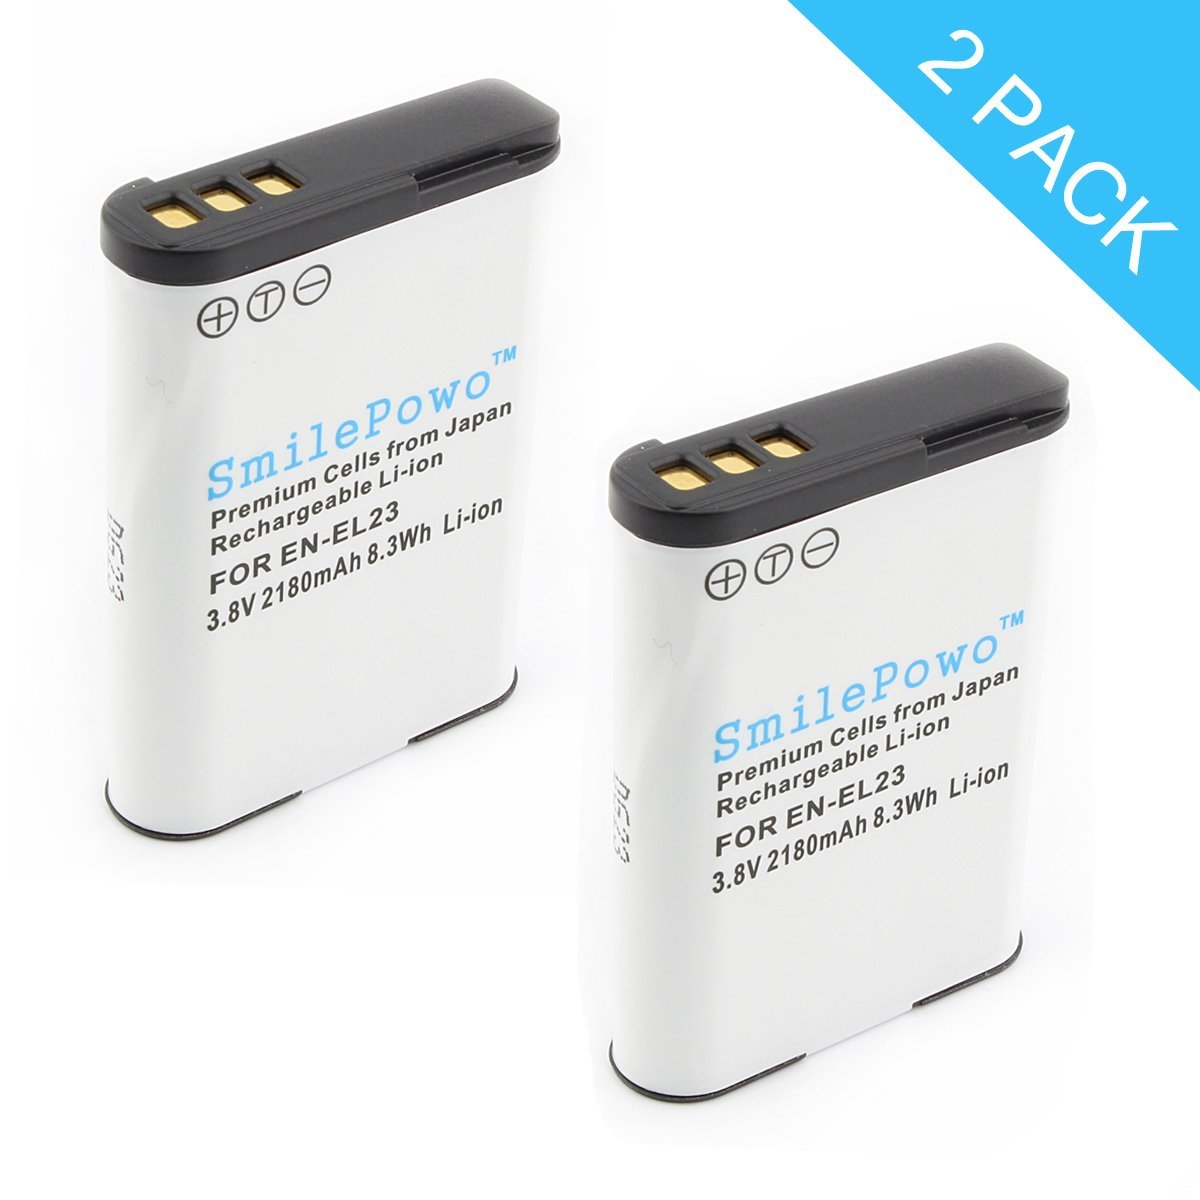 SmilePowo 2 Pack EN-EL23 Battery for Nikon Coolpix B700, P900, P600, P610, S810c Digital Camera (Chip automa